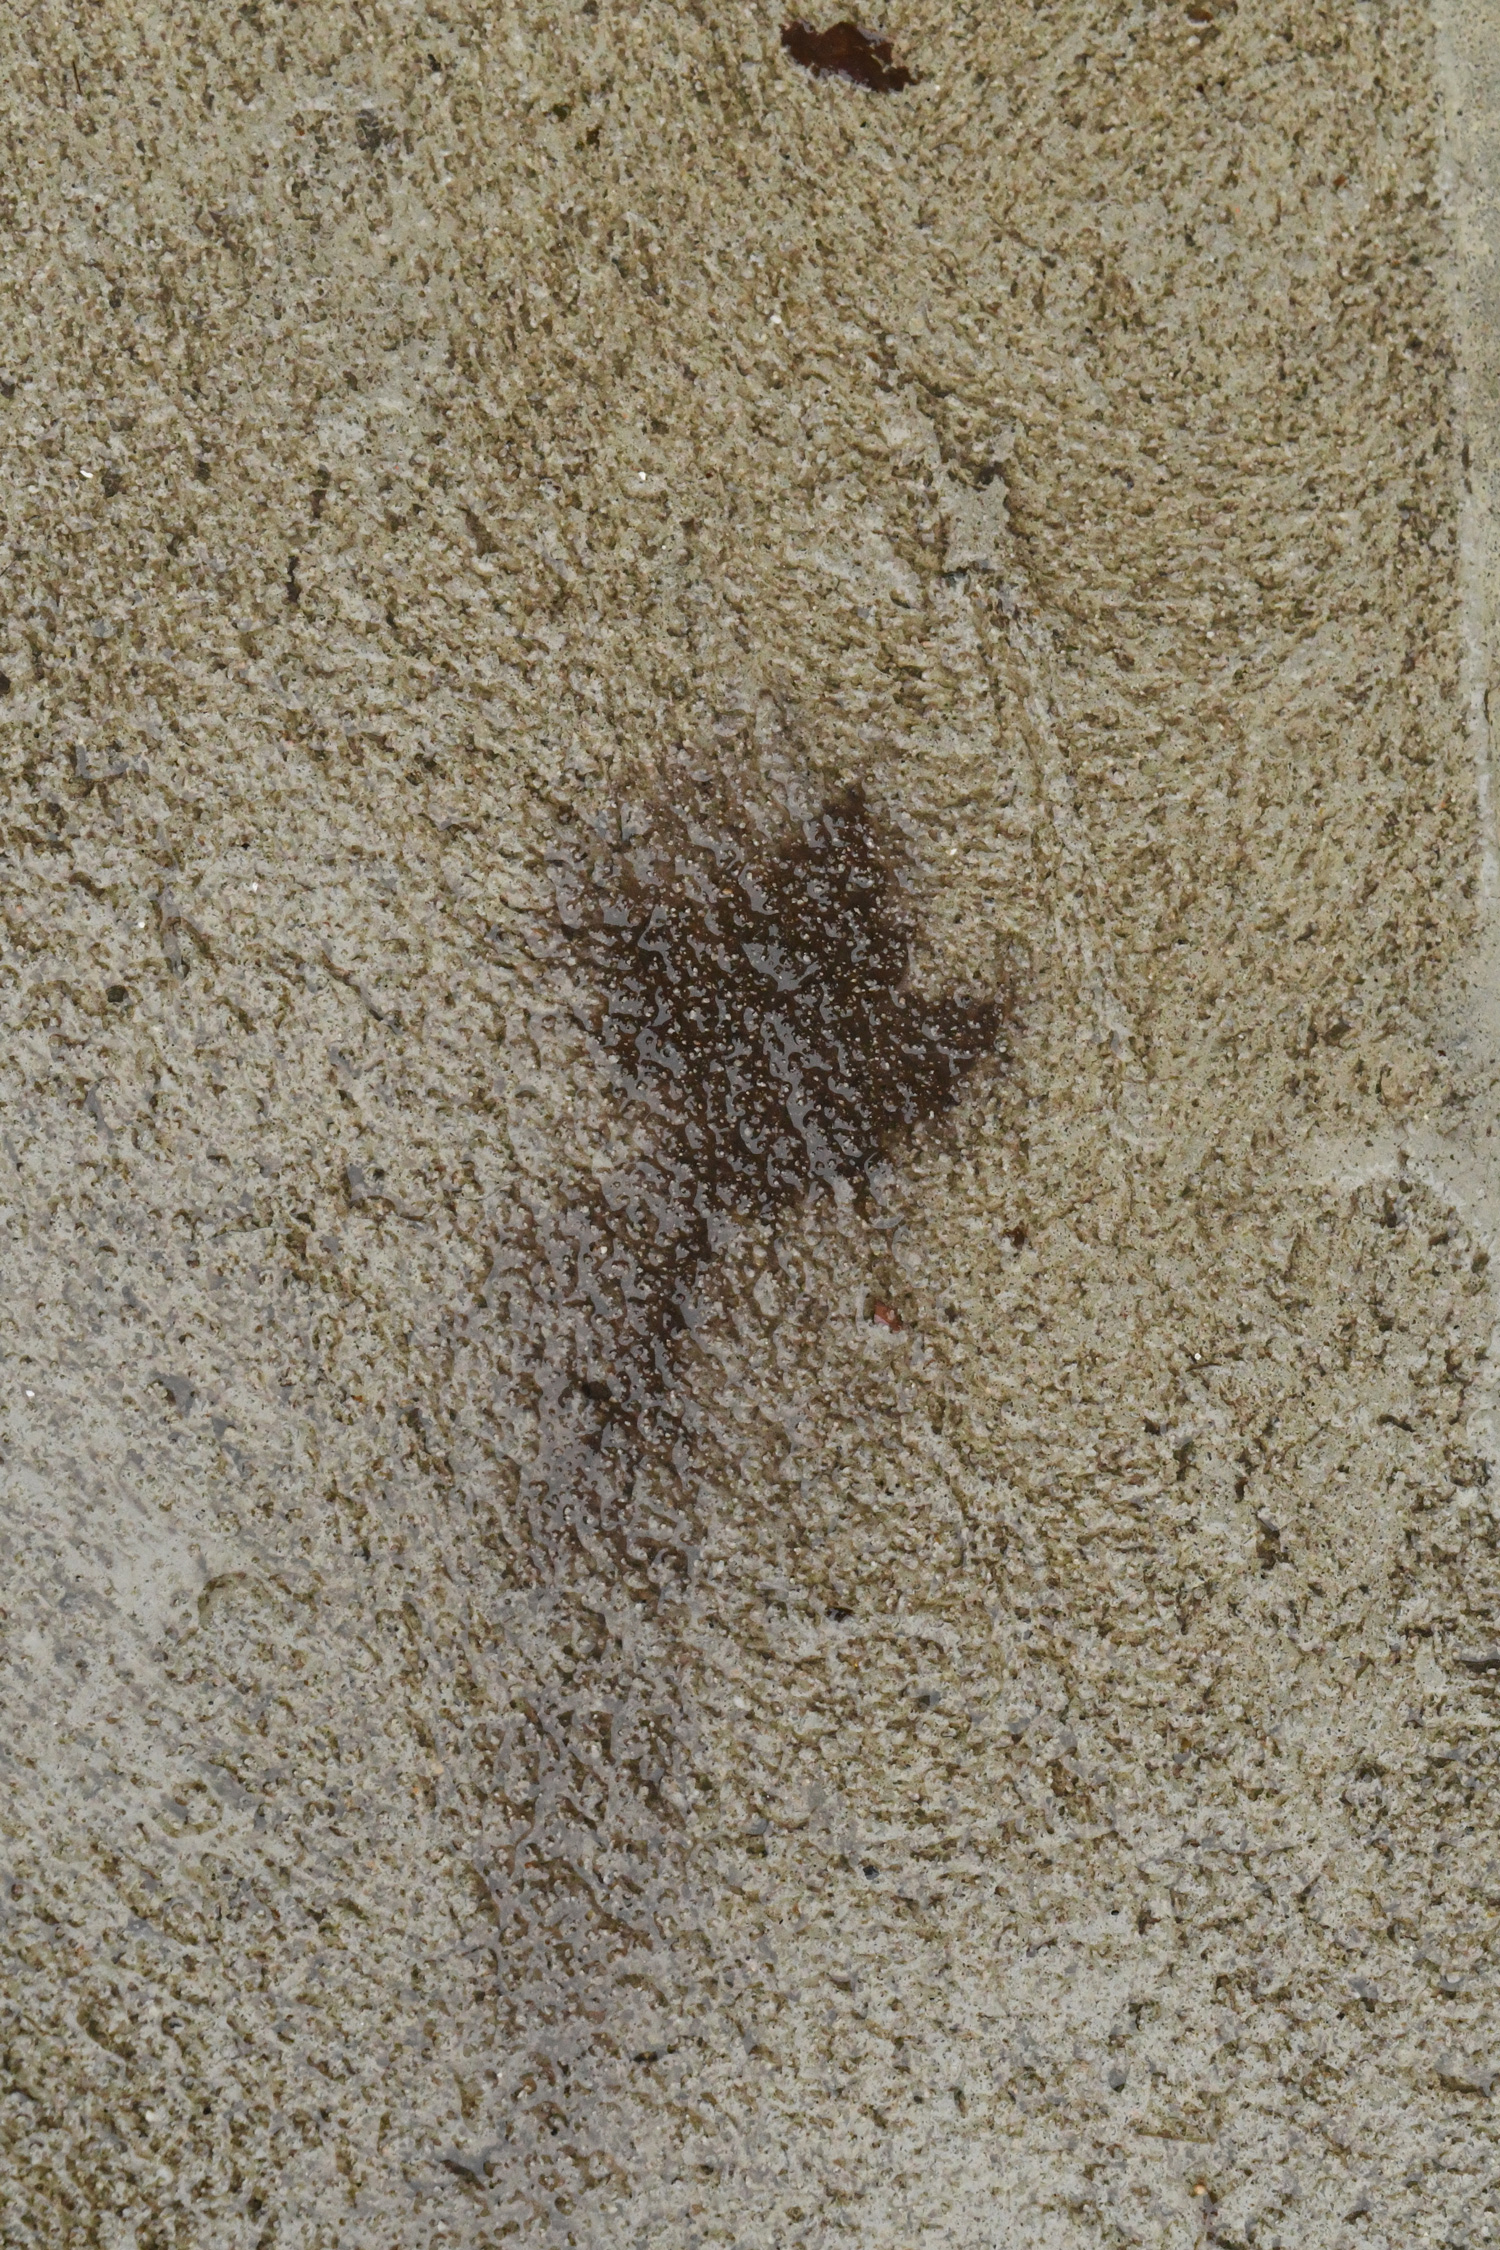 Leaf stain on cement